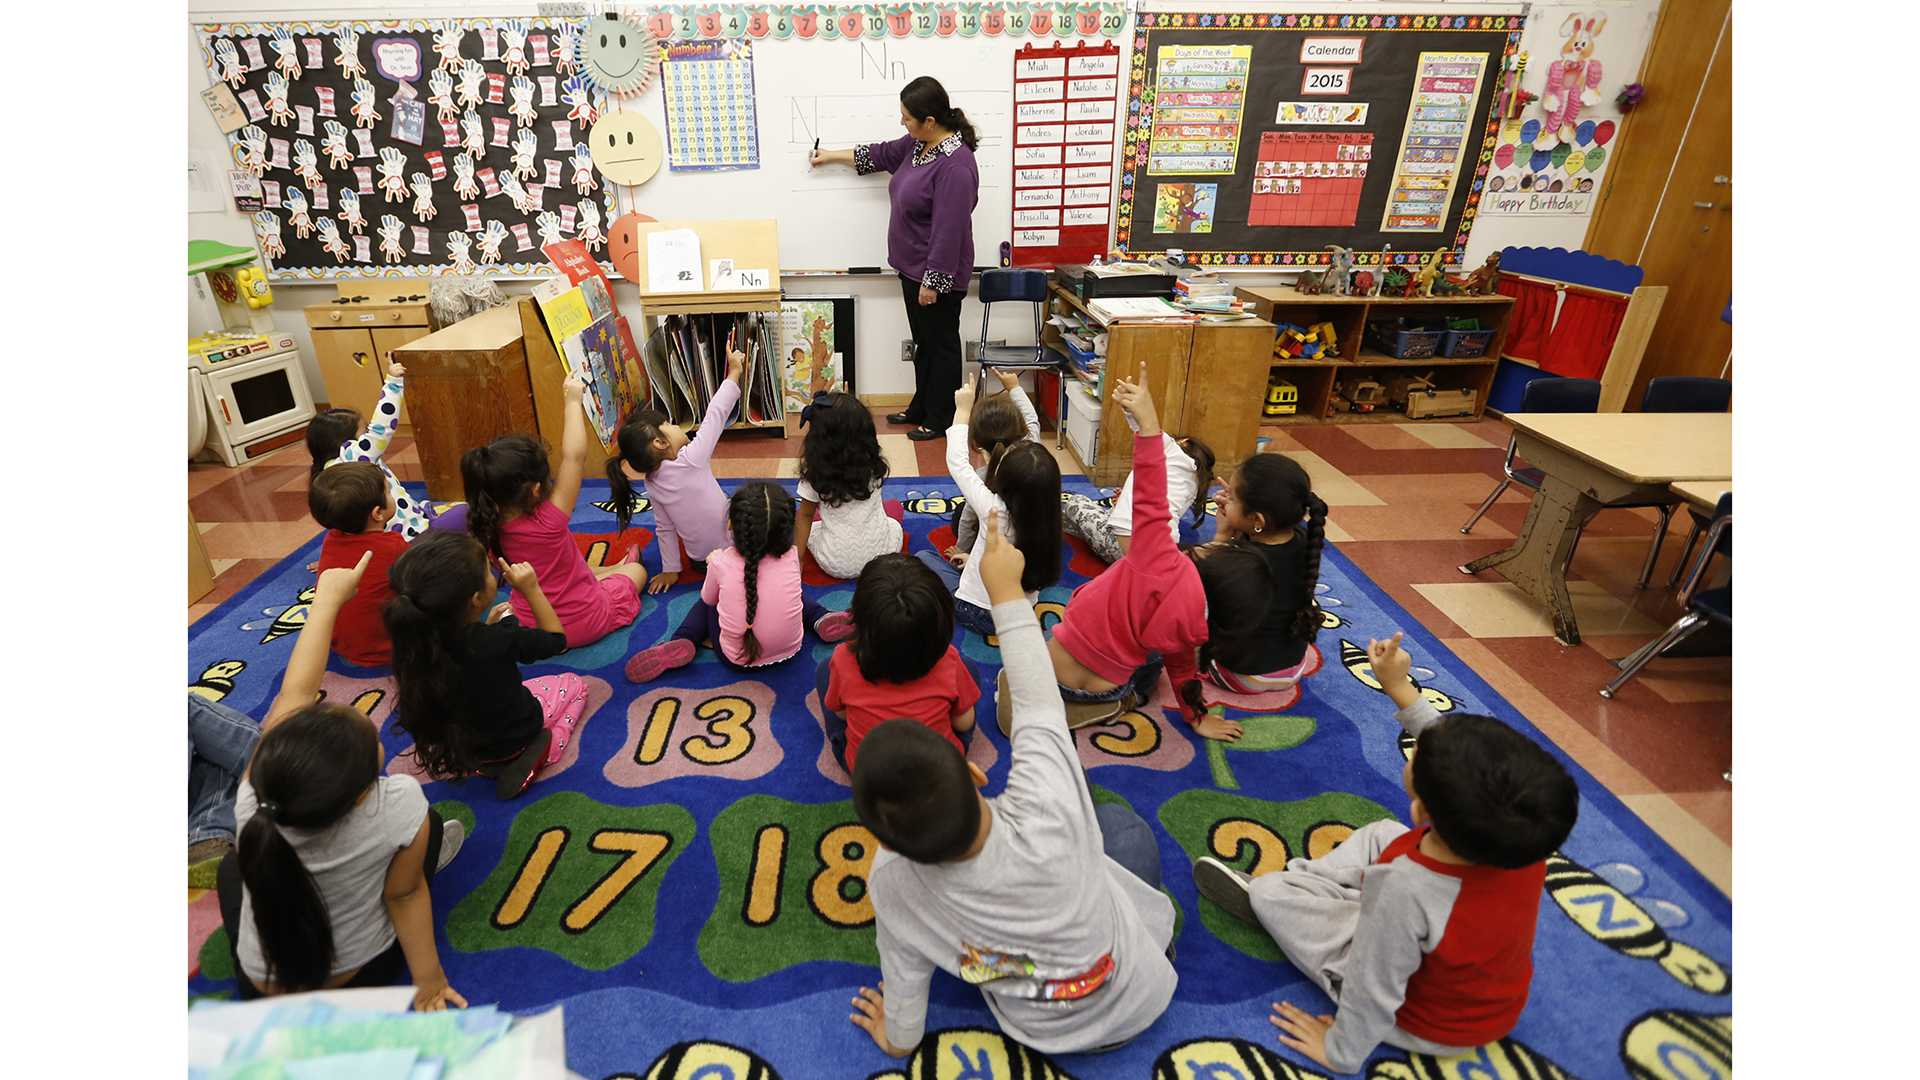 Weigel: Student Teaching: All Work, No Pay